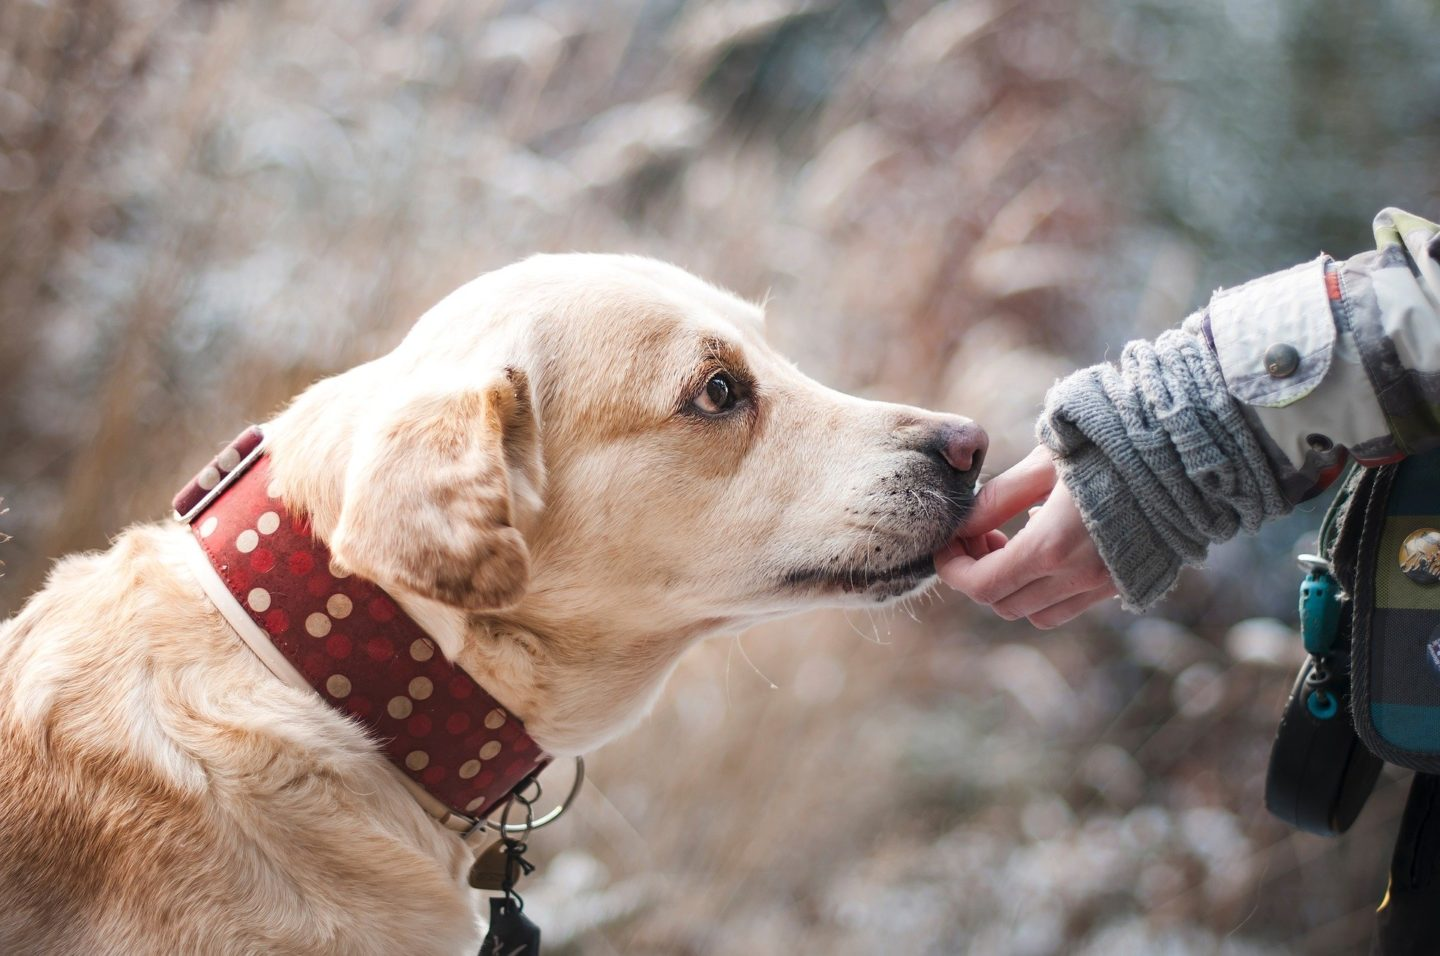 AD: Ideas for Christmas gifts for pets - dog getting a treat.